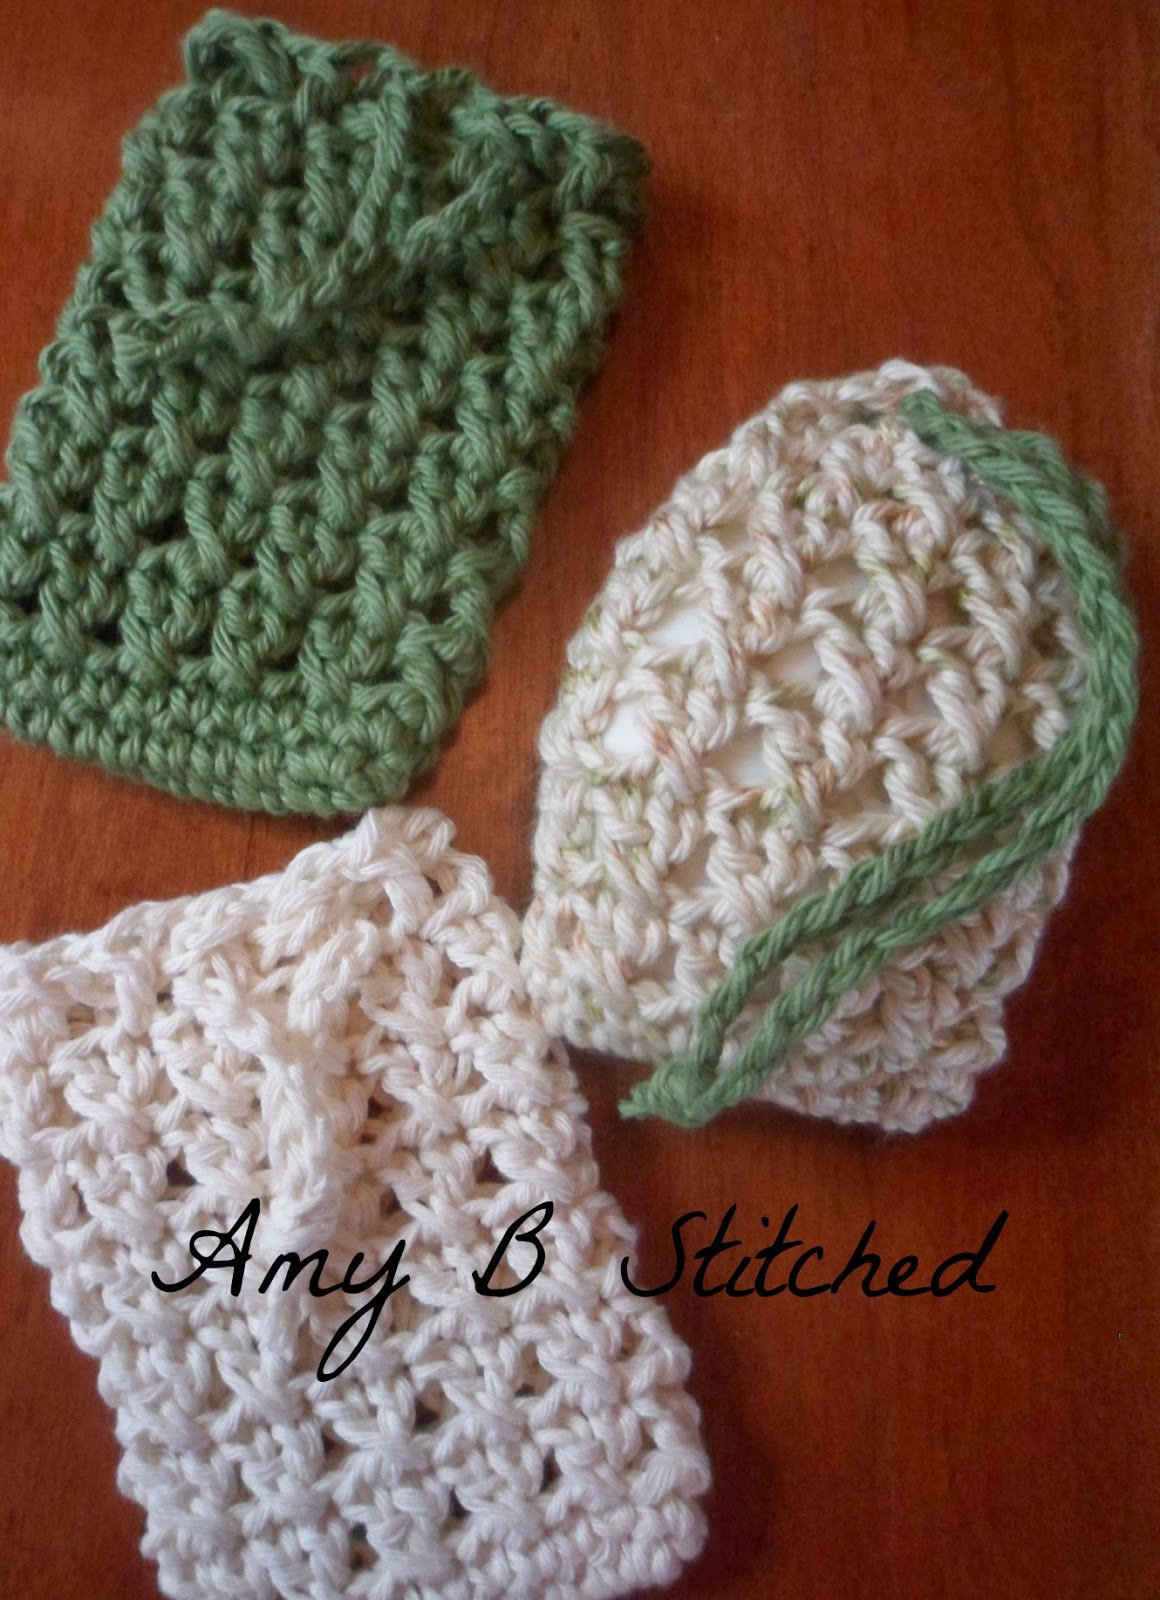 A Stitch At A Time For Amy B Stitched Cross Stitch Soap Saver Pouch